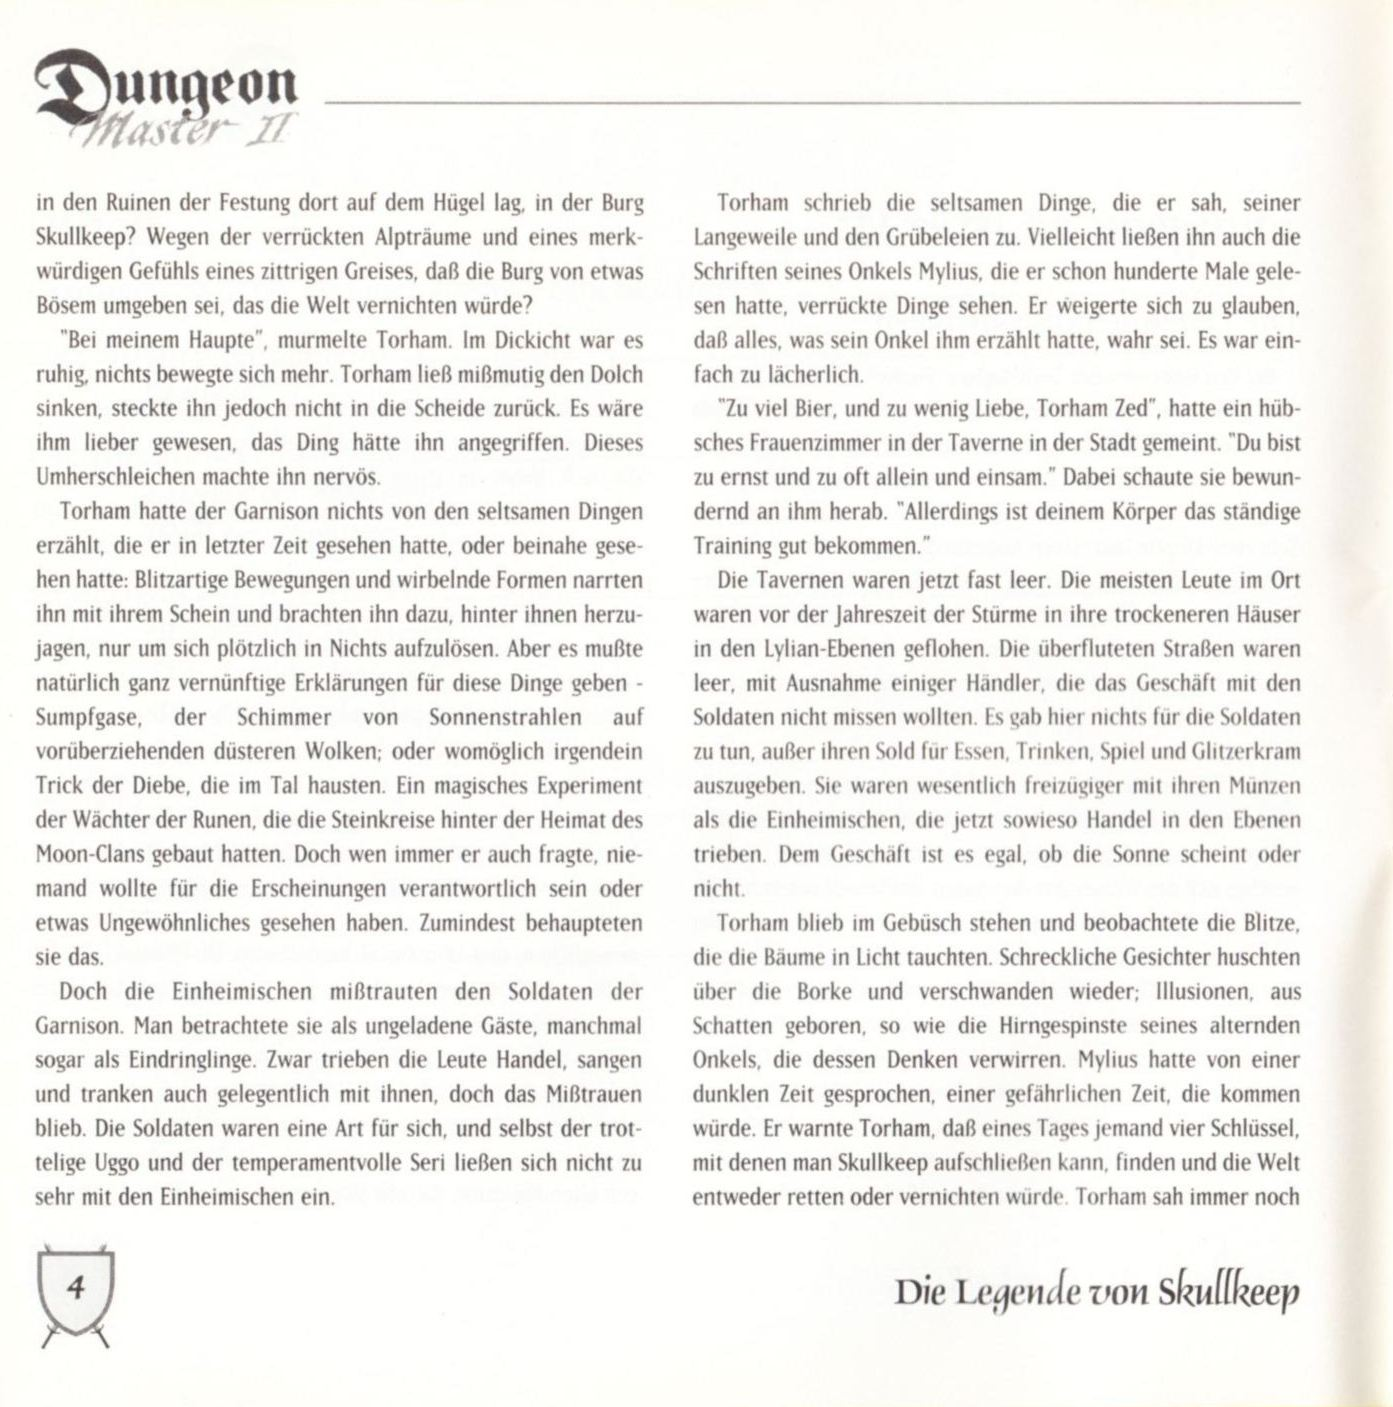 Game - Dungeon Master II - DE - PC - Blackmarket With Booklet - Booklet - Page 006 - Scan